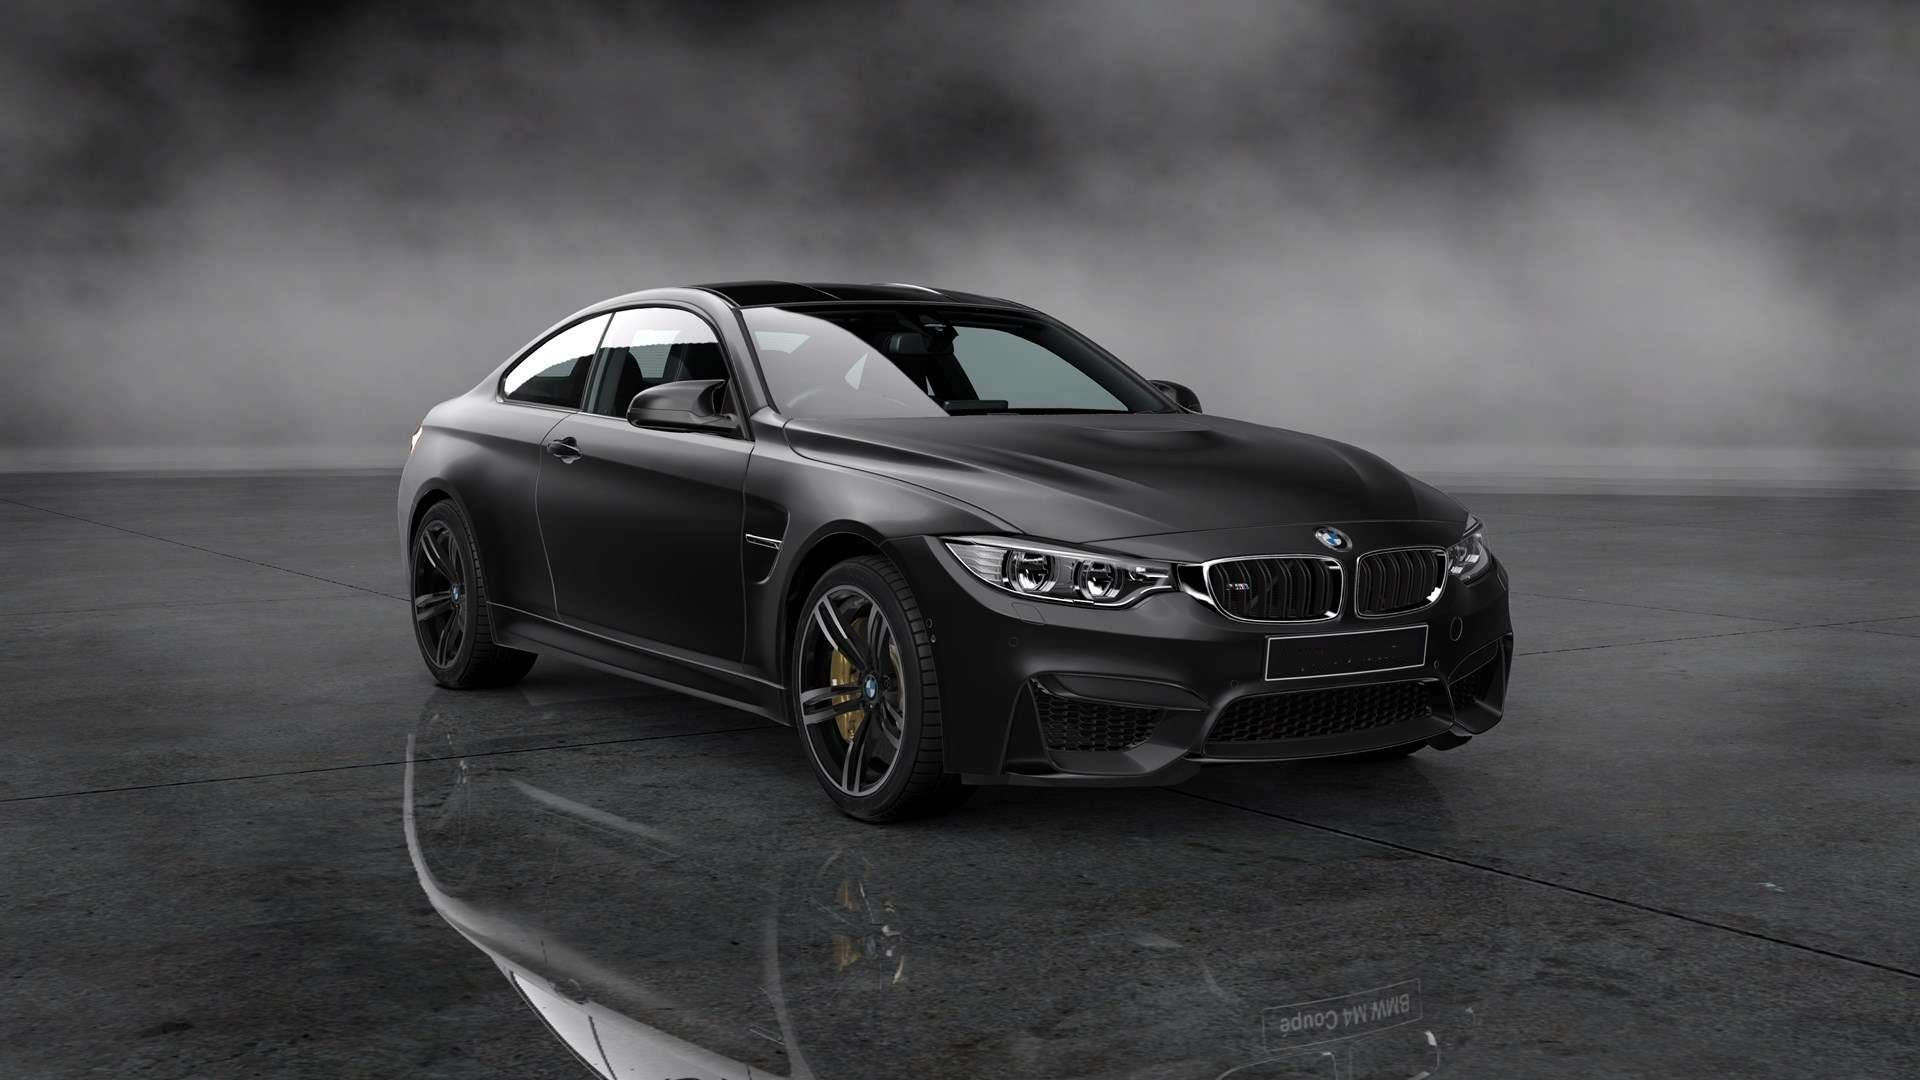 1920x1080 BMW Wallpapers - Wallpaper Cave